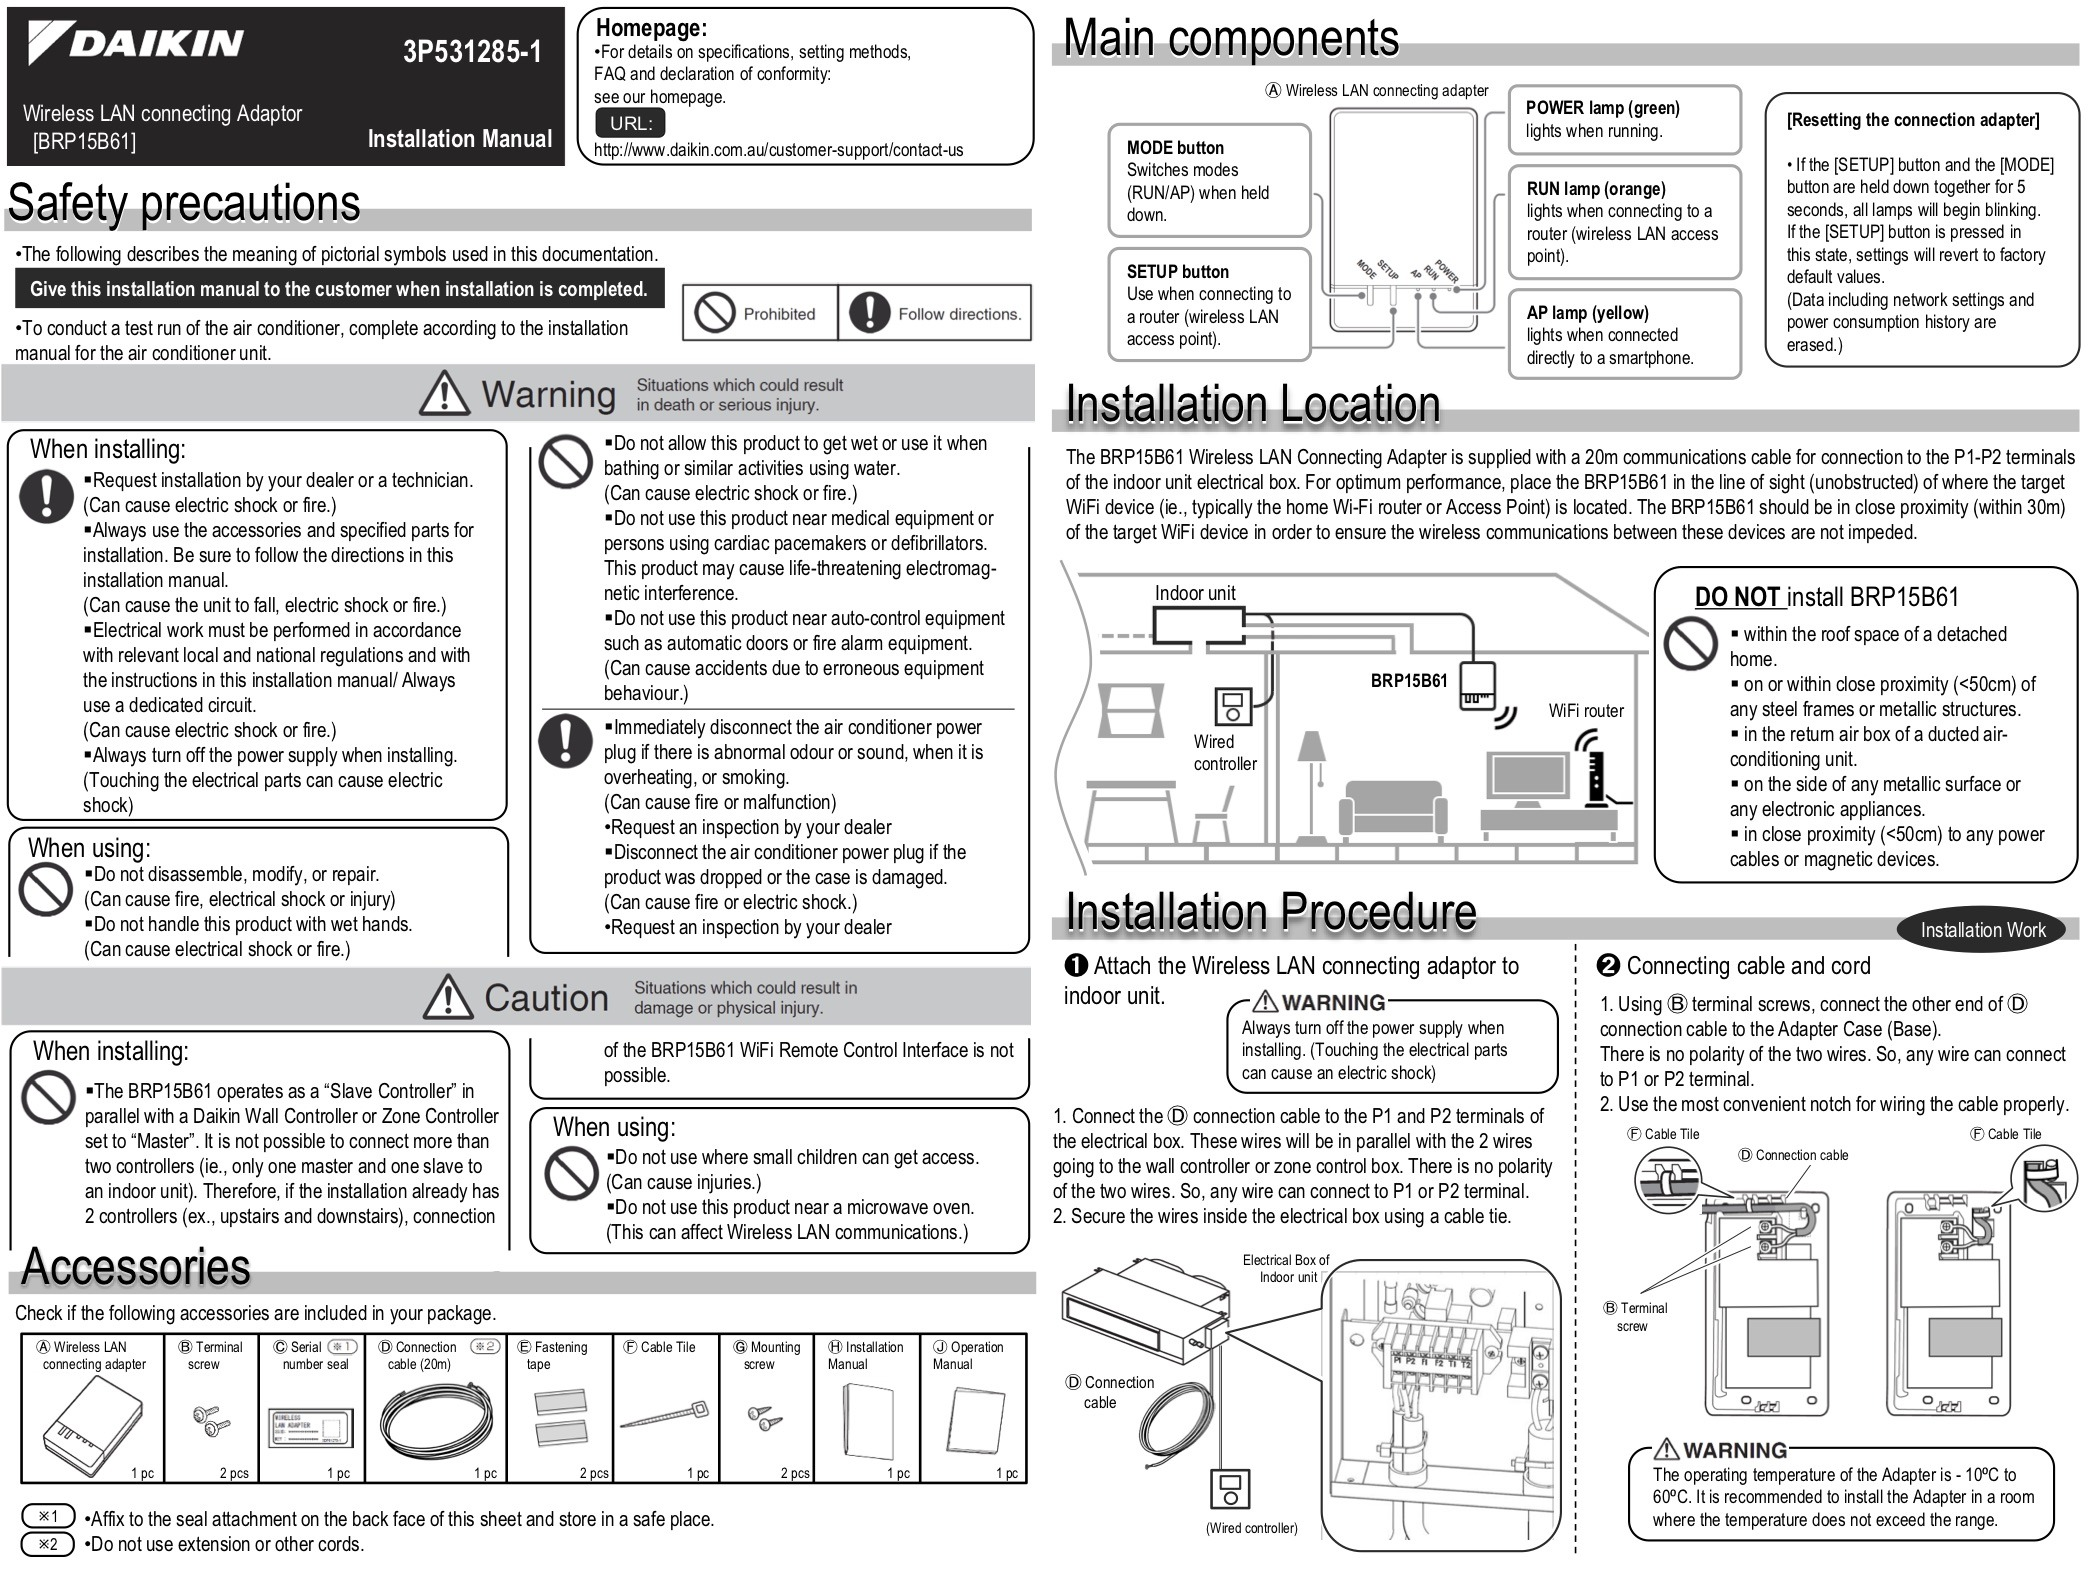 daikin air conditioning instruction manual